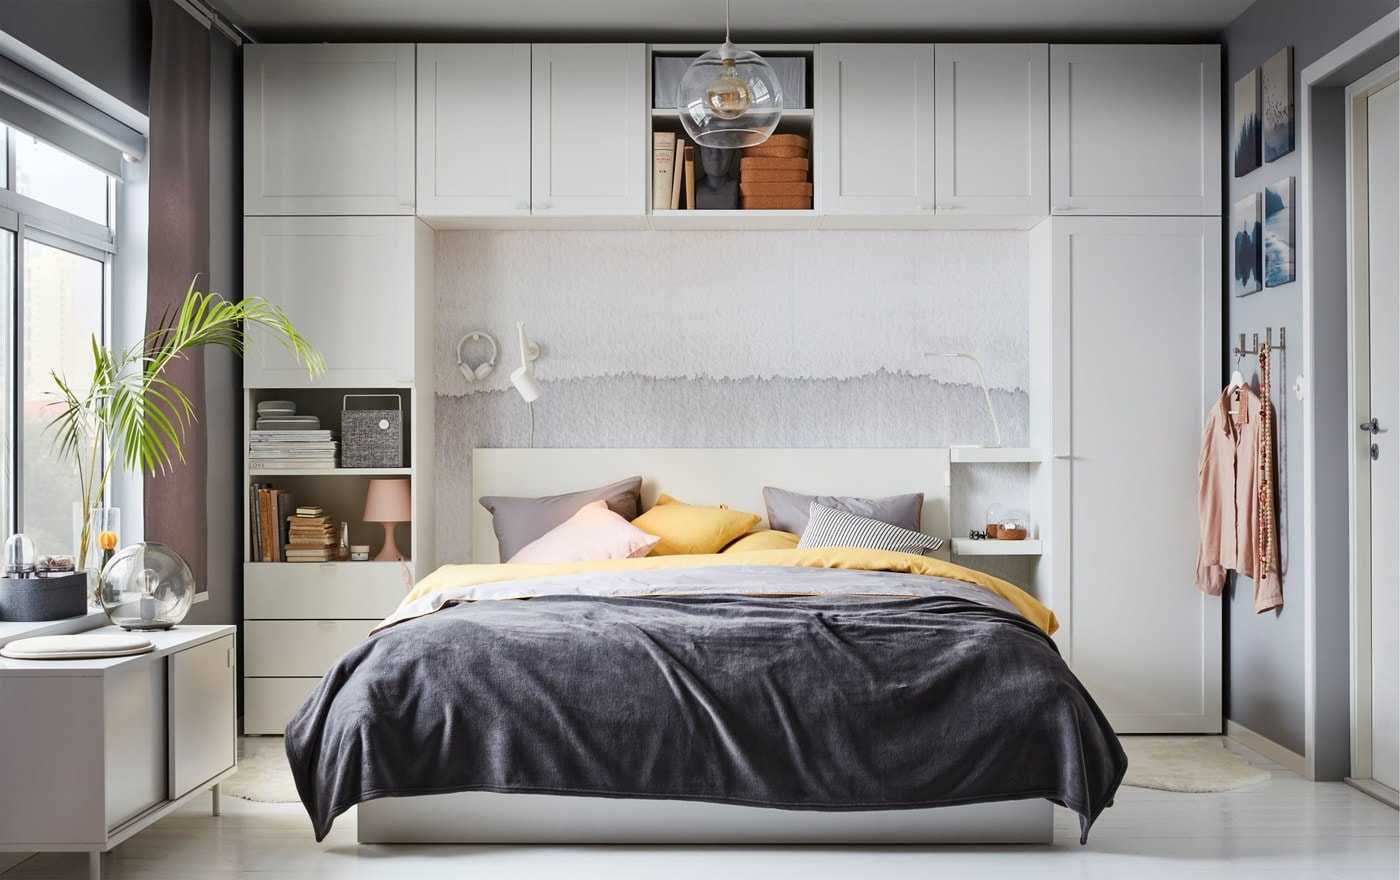 How to Create More Storage Space for Bedroom - IKEA